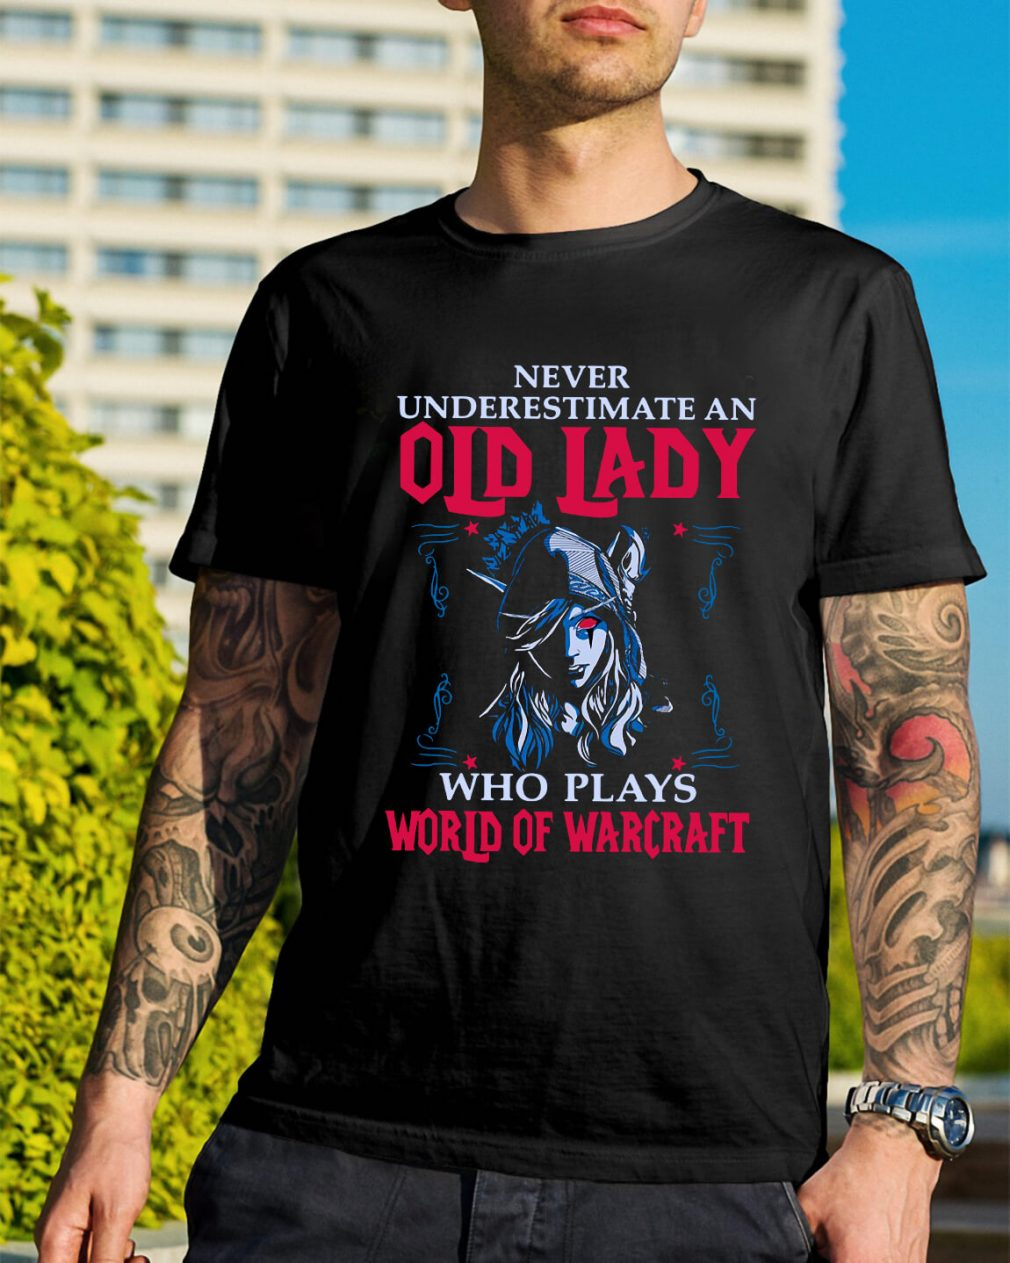 Never underestimate an old lady who plays world of warcraft shirt